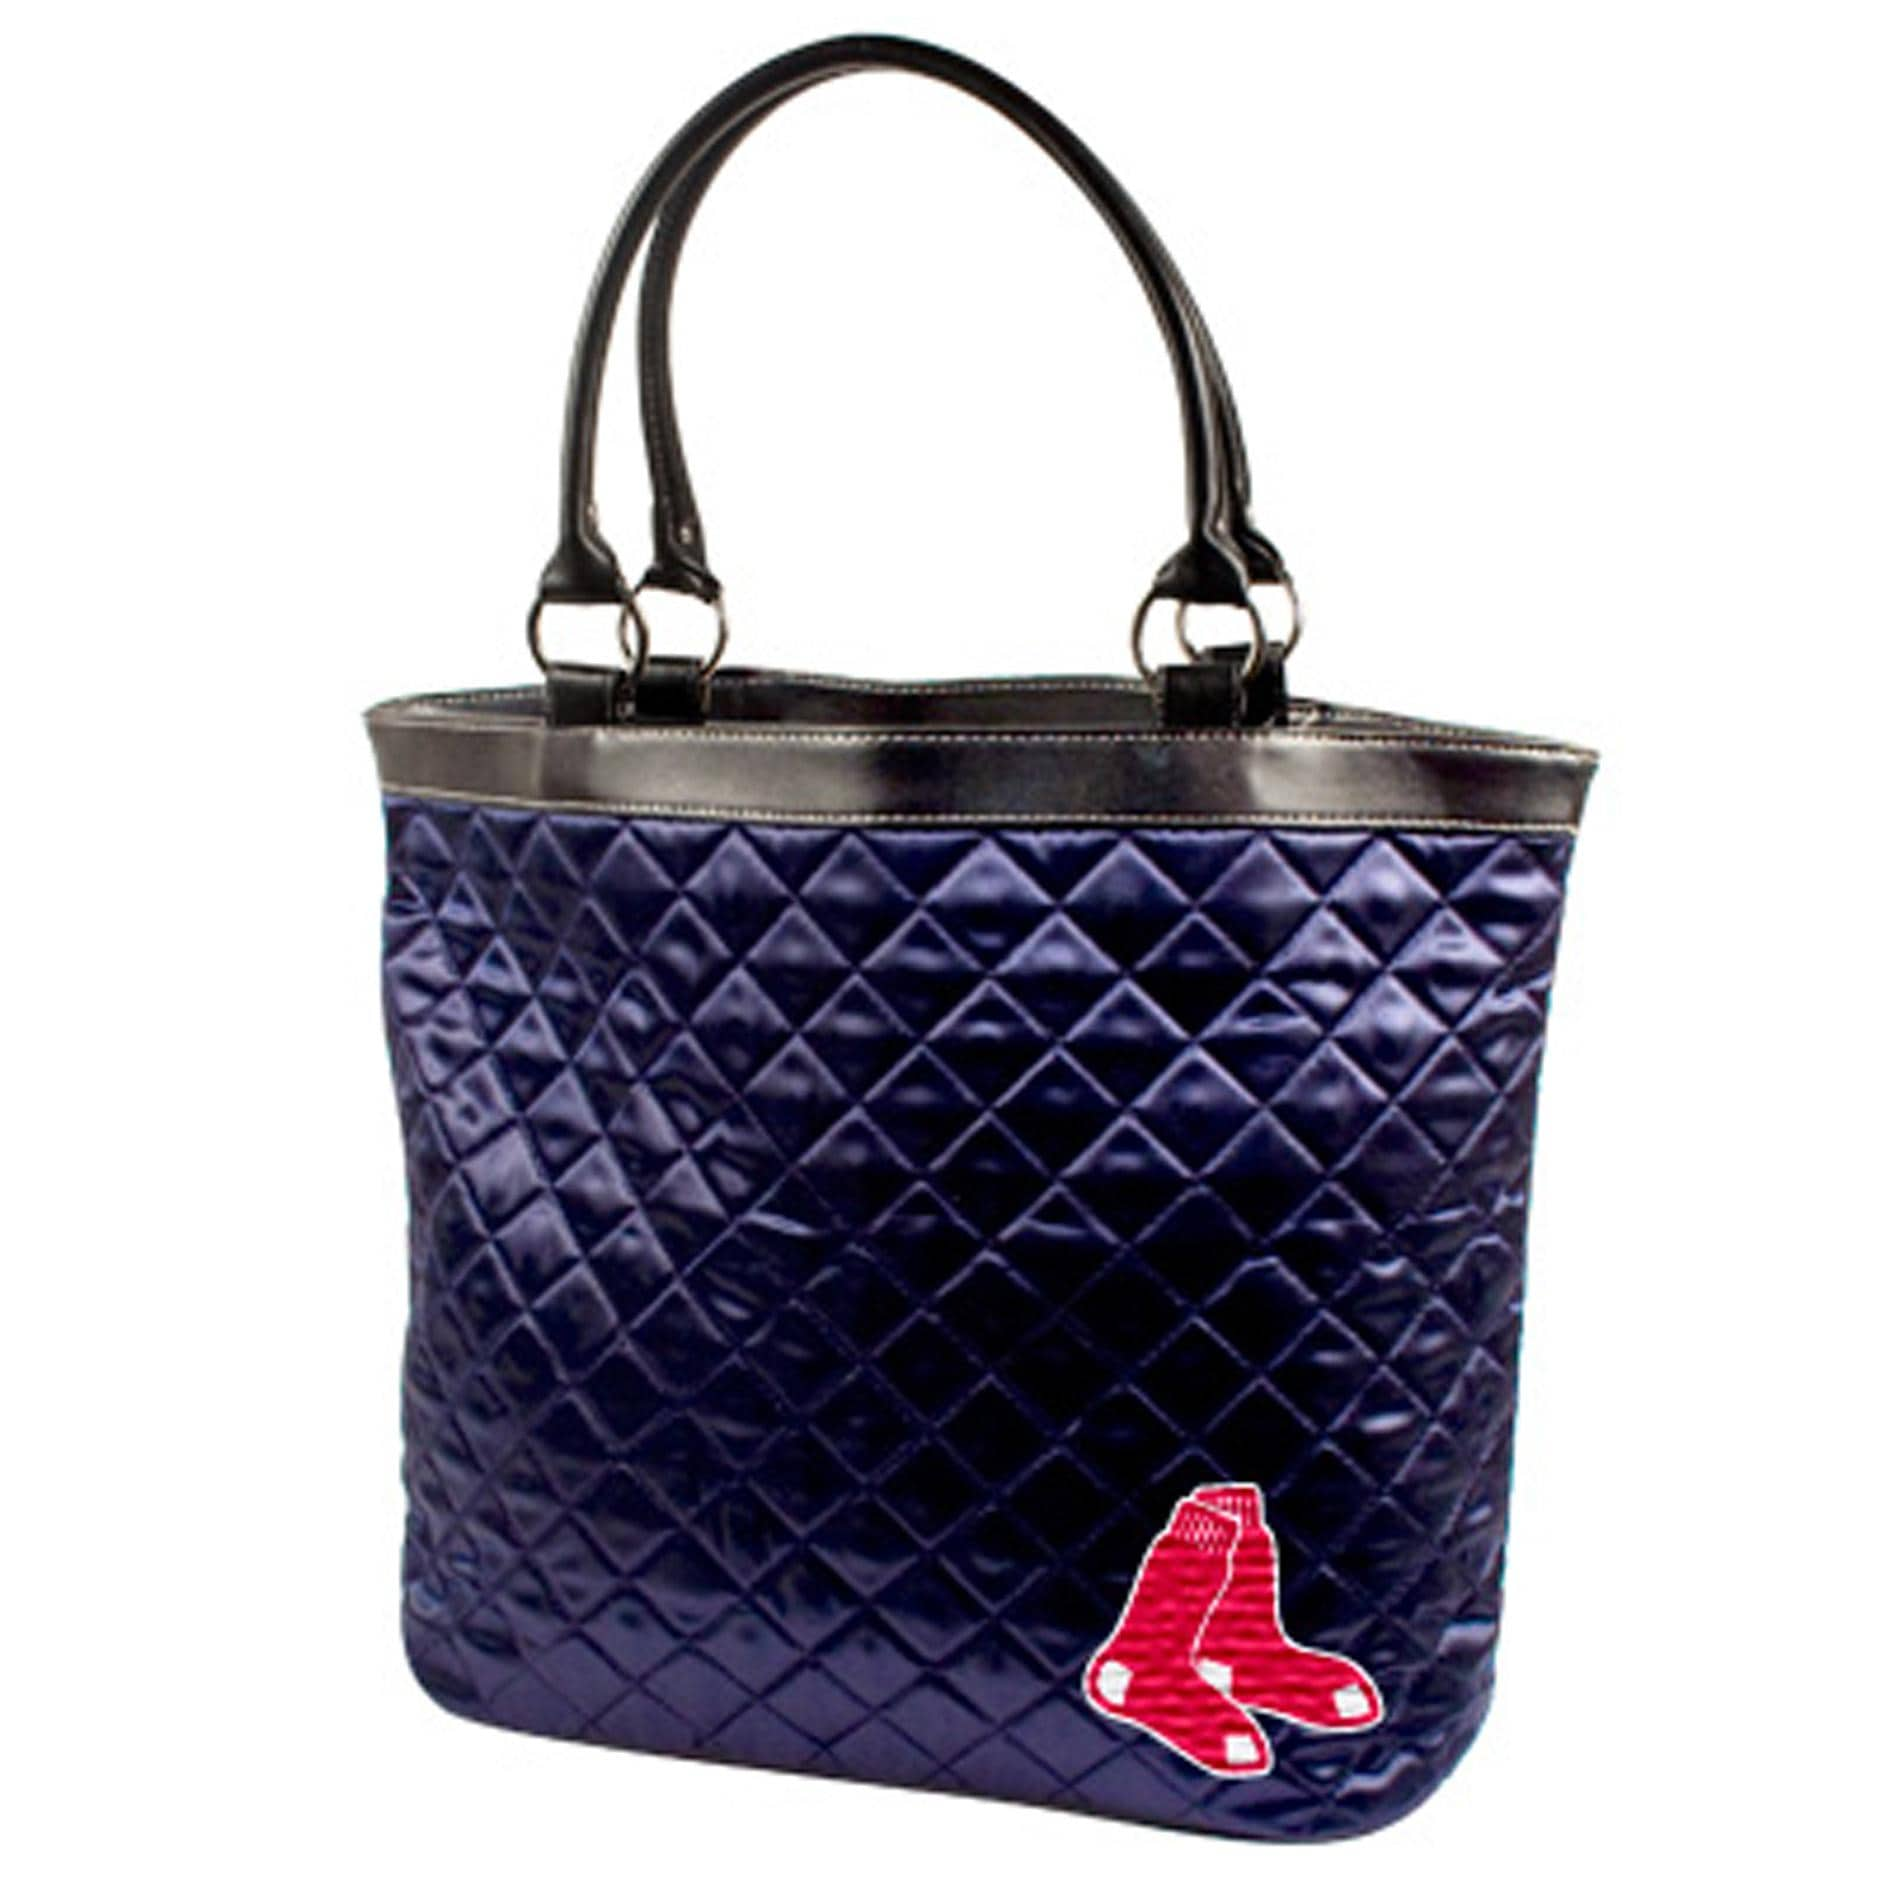 Little Earth MLB Boston Red Sox Quilted Tote Bag